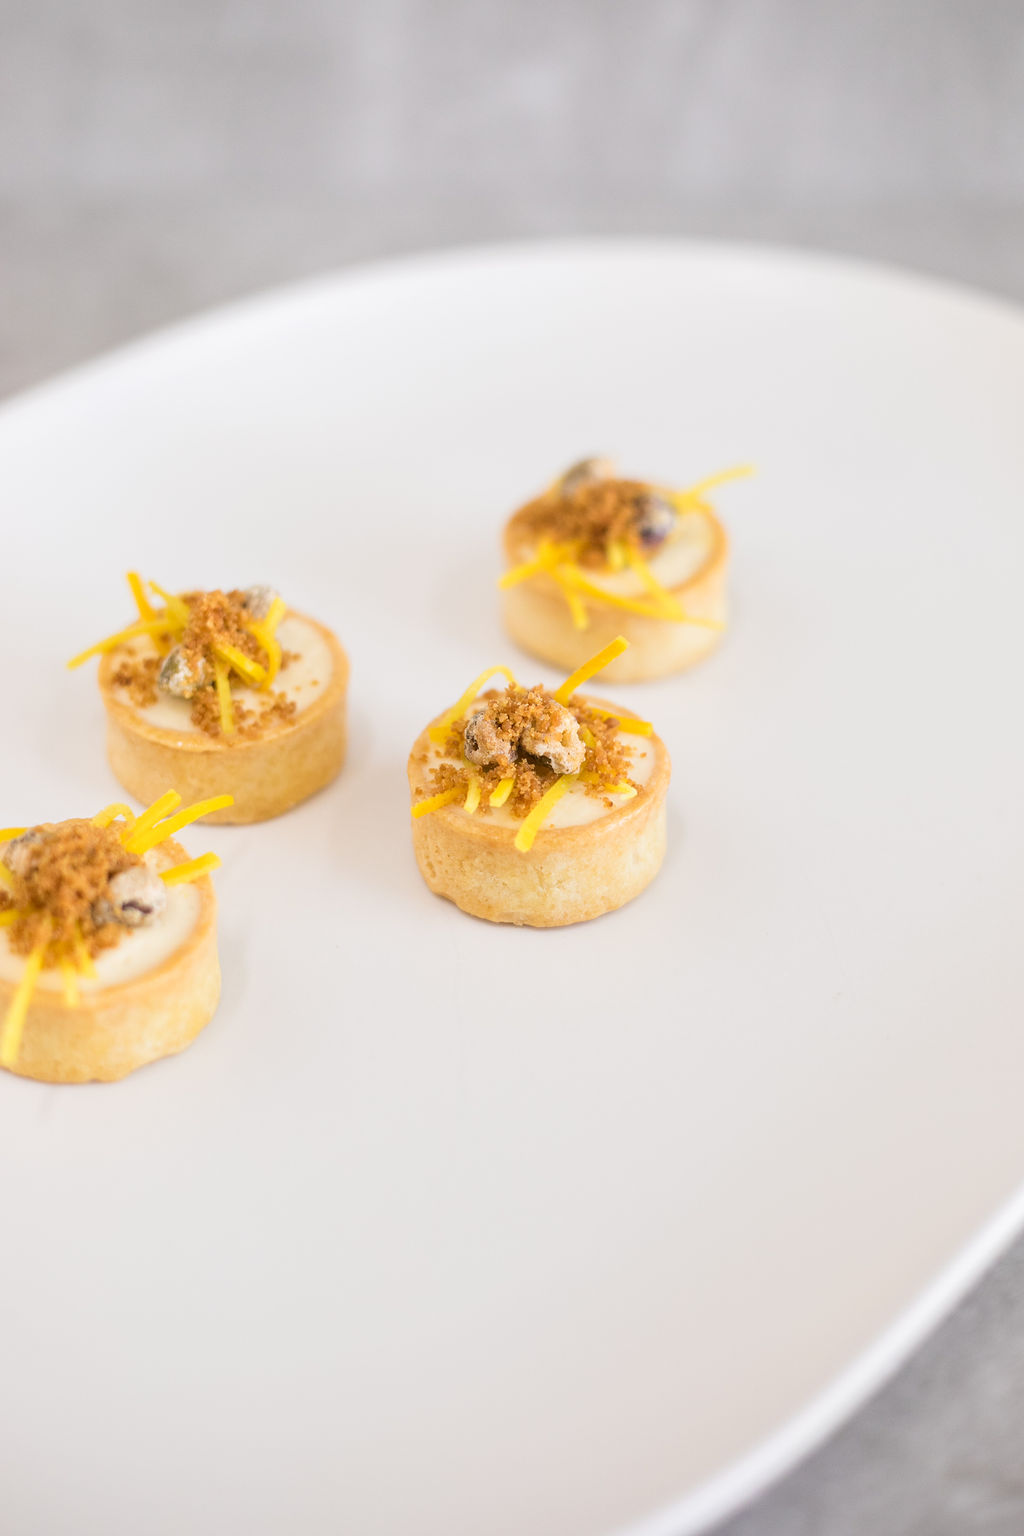 D - Zesty orange cheesecake tart, candied pistachio and ginger biscuit crumb6.jpg